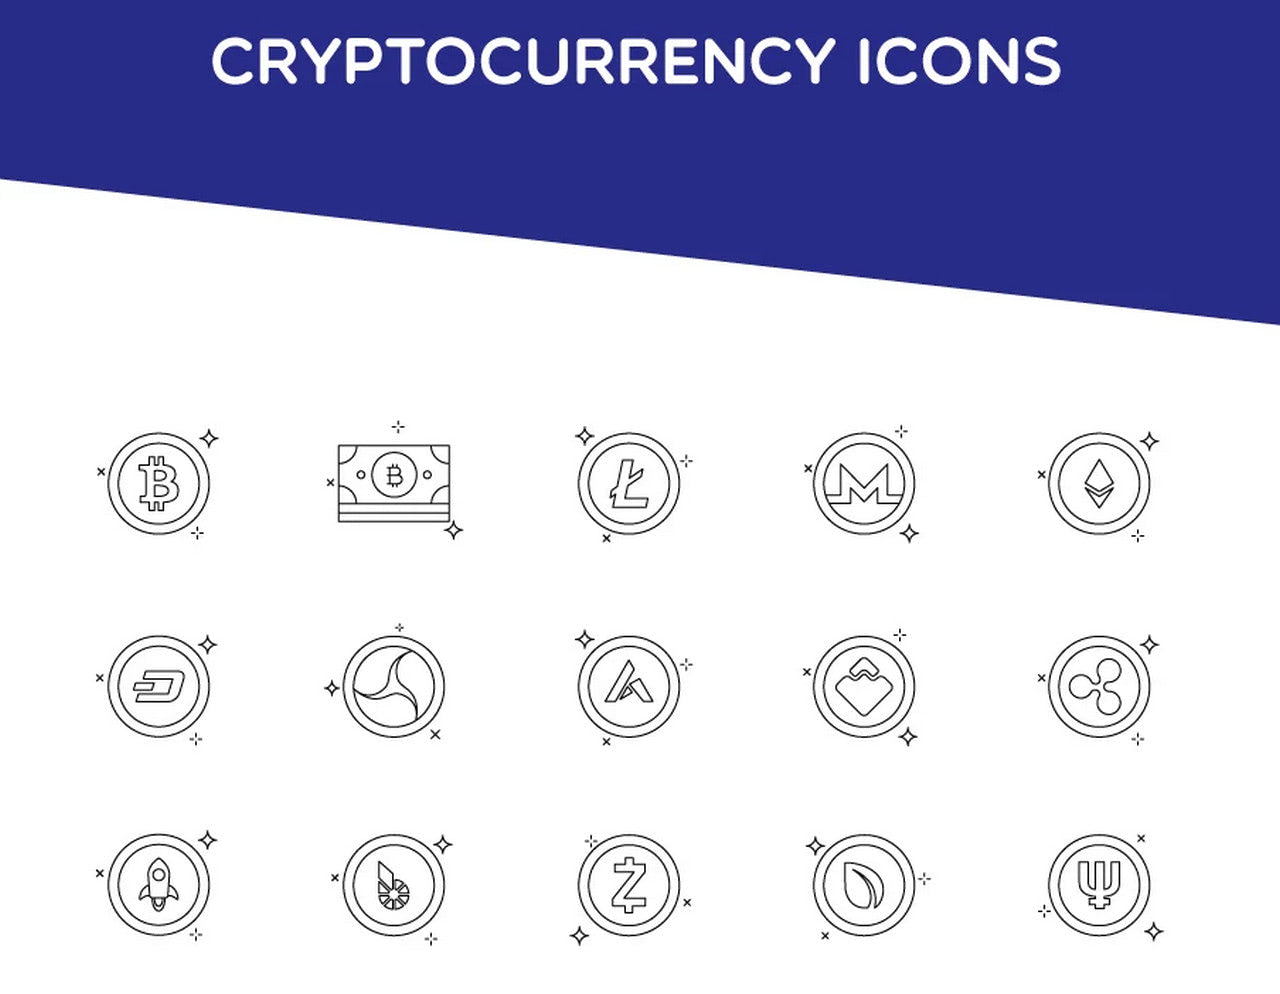 Top 100 Cryptocurrency Icons - Blockchain by Steven Ankri